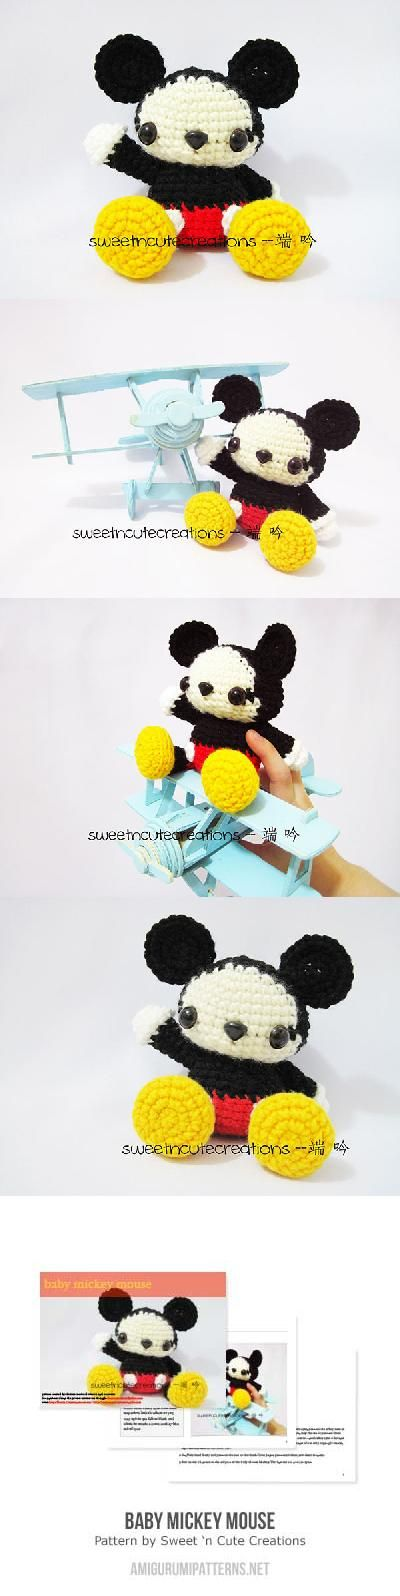 Baby Mickey Mouse amigurumi pattern by Sweet N\' Cute Creations